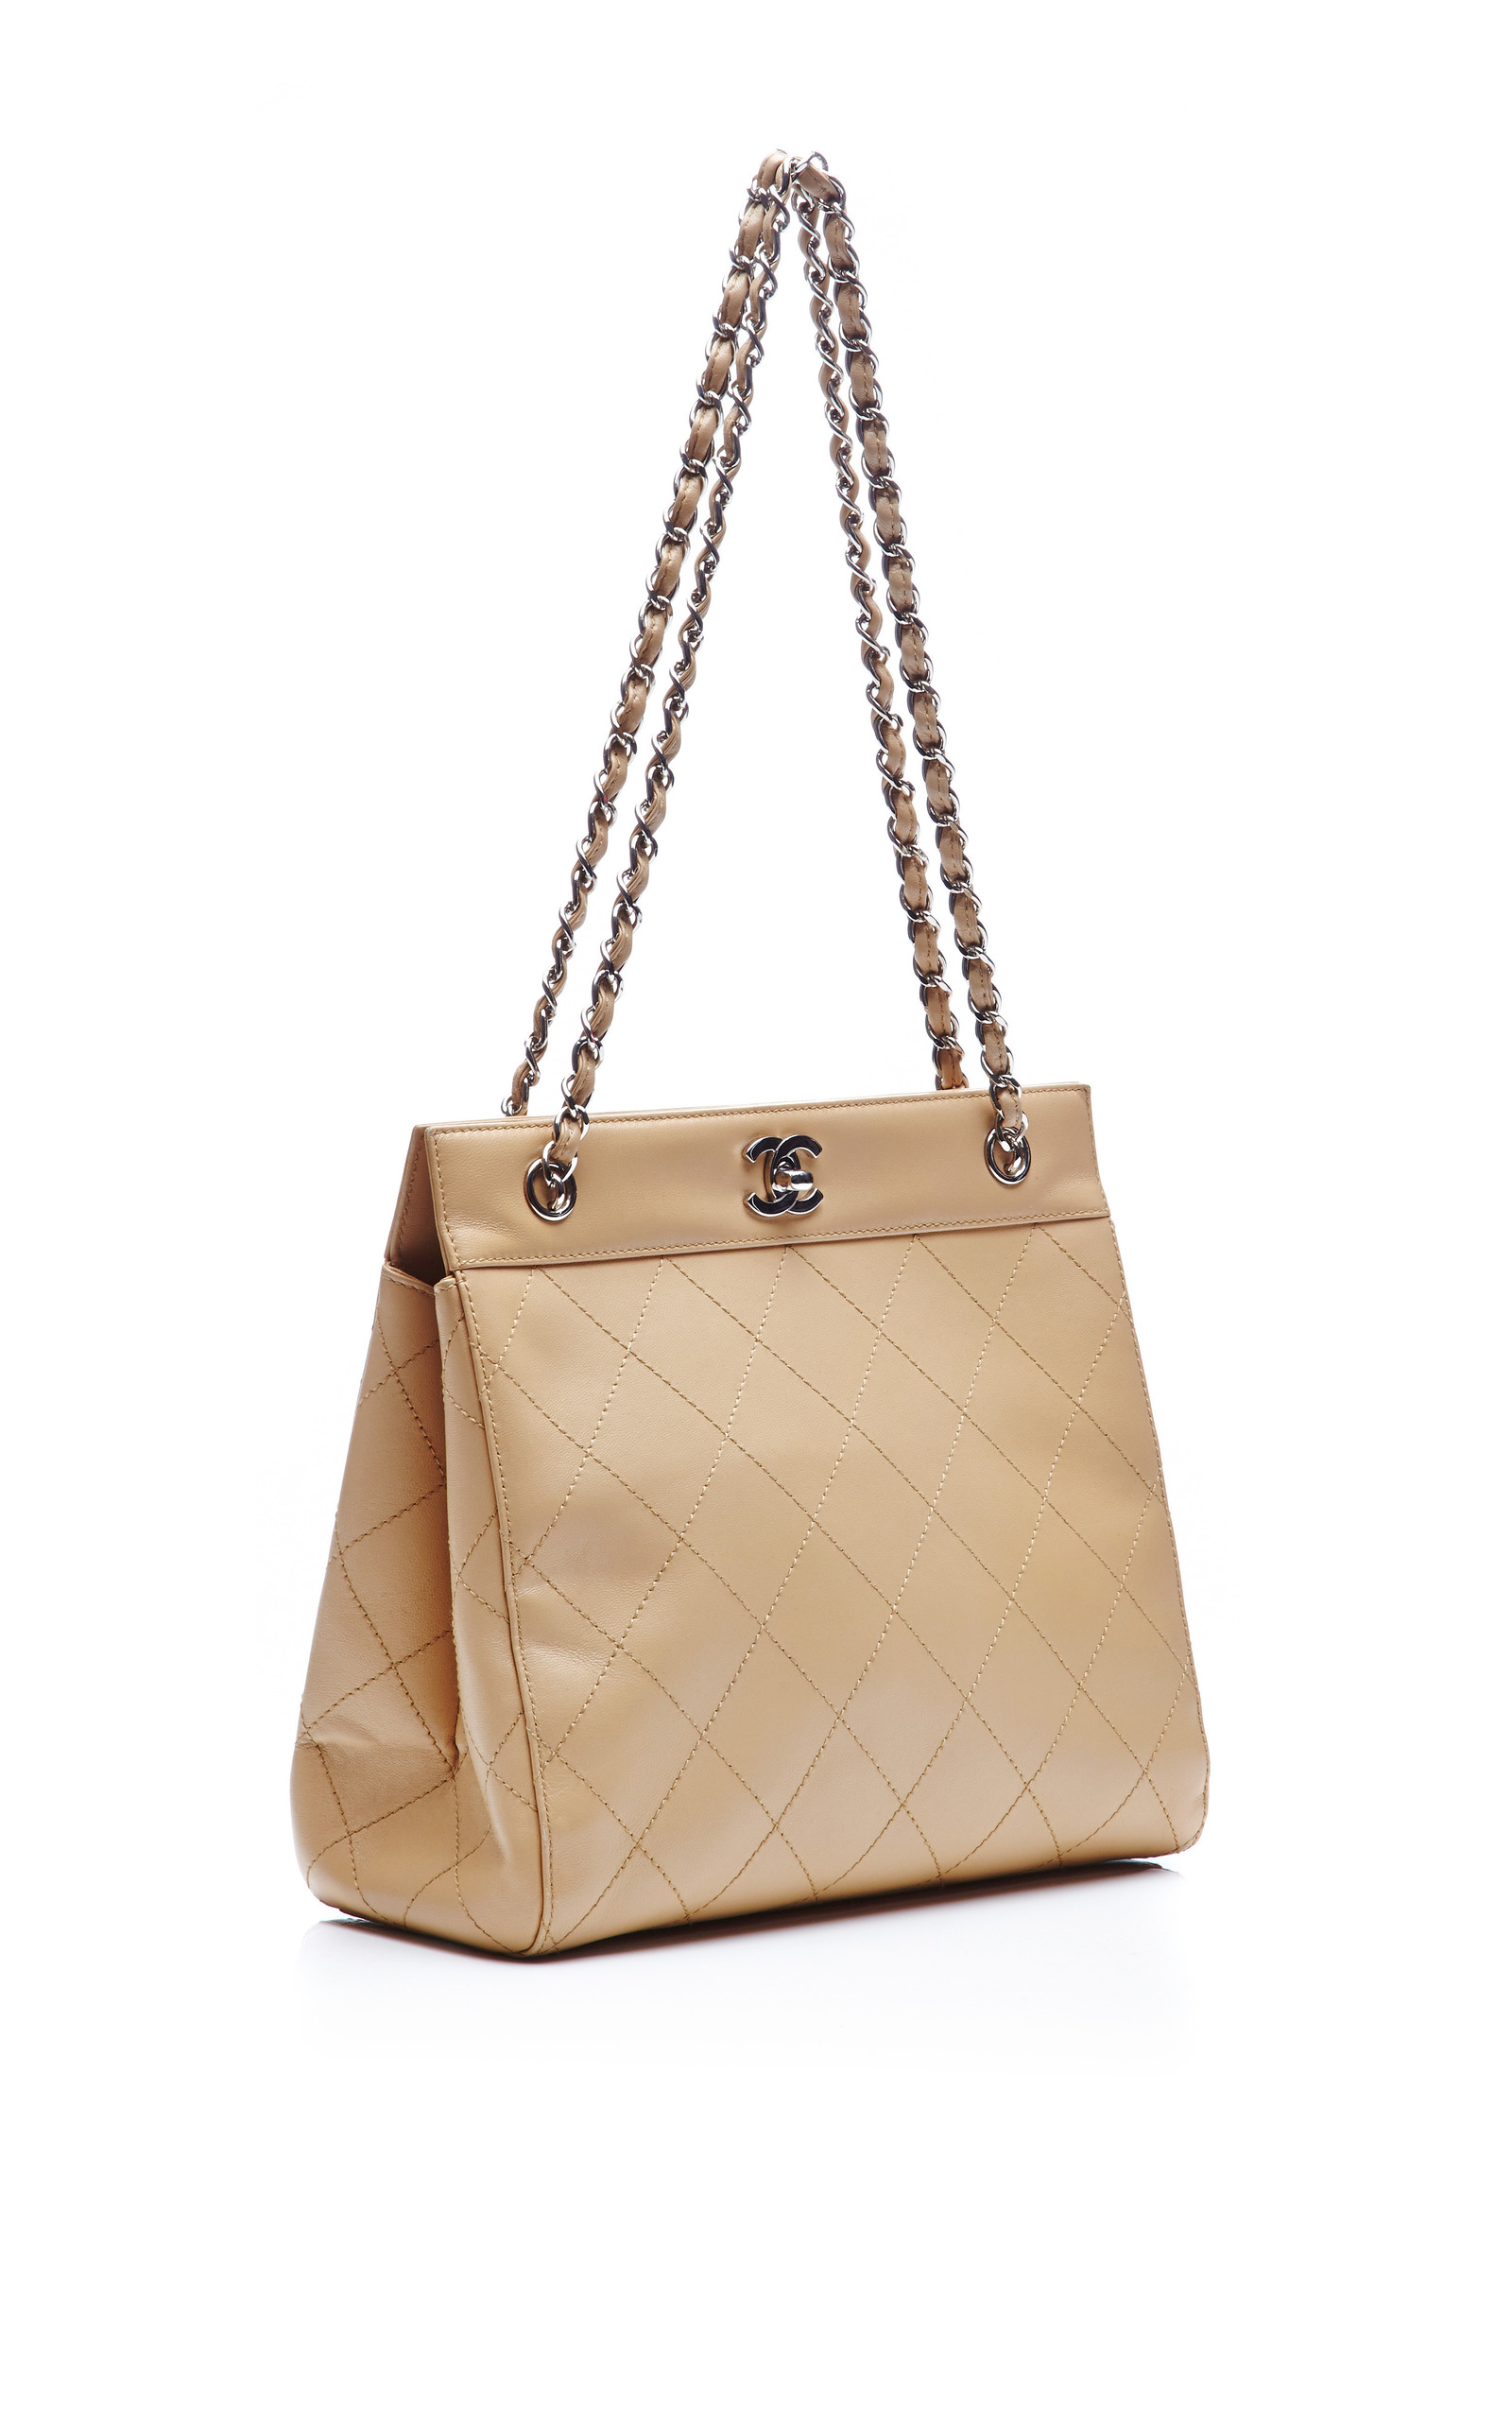 c4e8308a6d2a Collectible JacketsChanel Beige Lambskin Quilted Tote Bag from What Goes  Around Comes Around. CLOSE. Loading